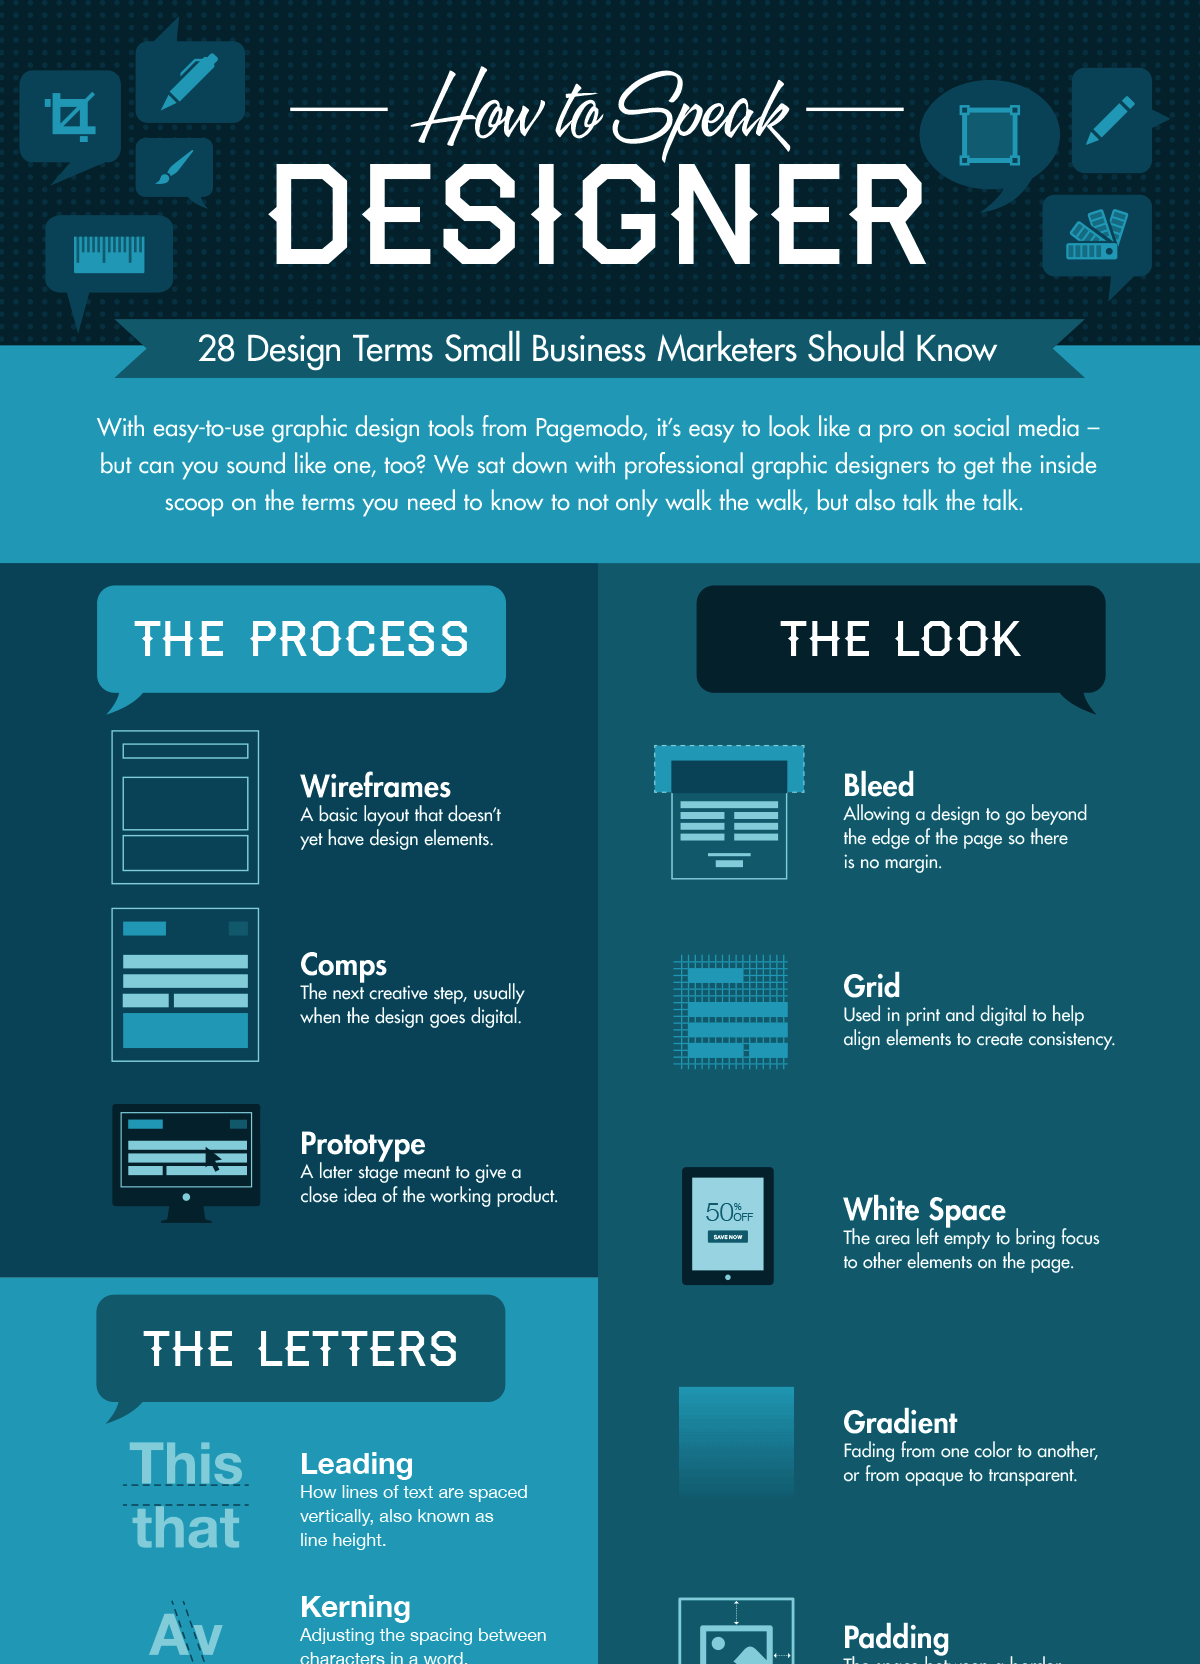 Graphic-Design-Words-Everyone-Should-Know